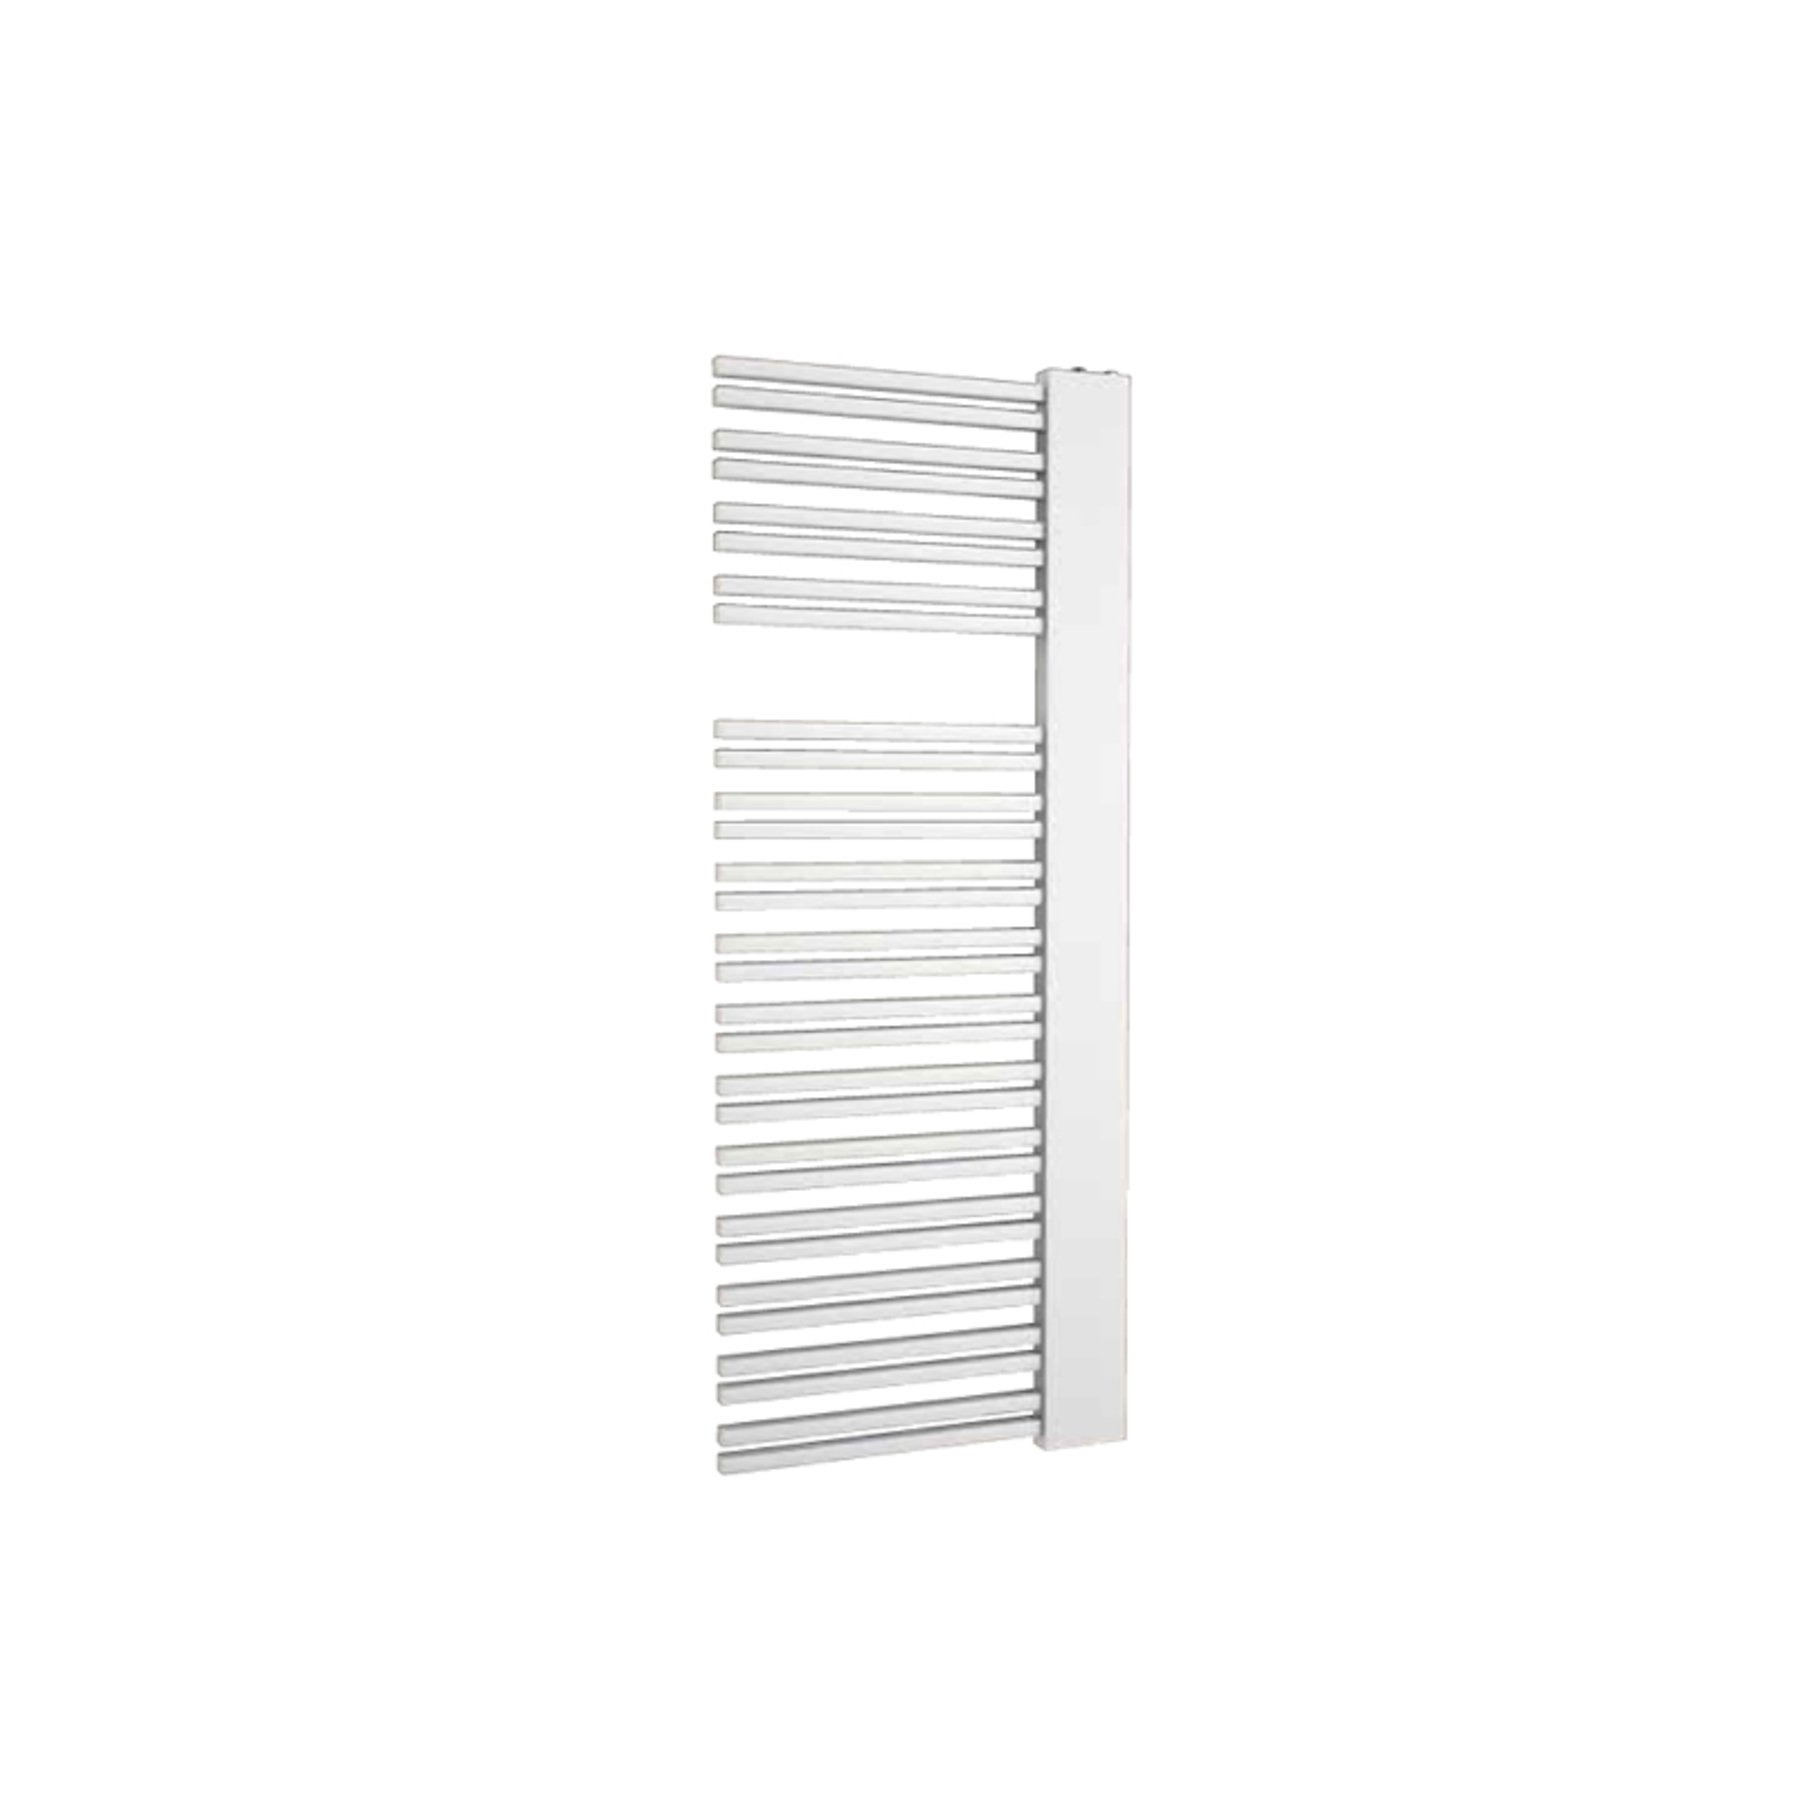 Plieger Frente Sinistra Designradiator horizontaal links 1610x600mm 933 watt zandsteen